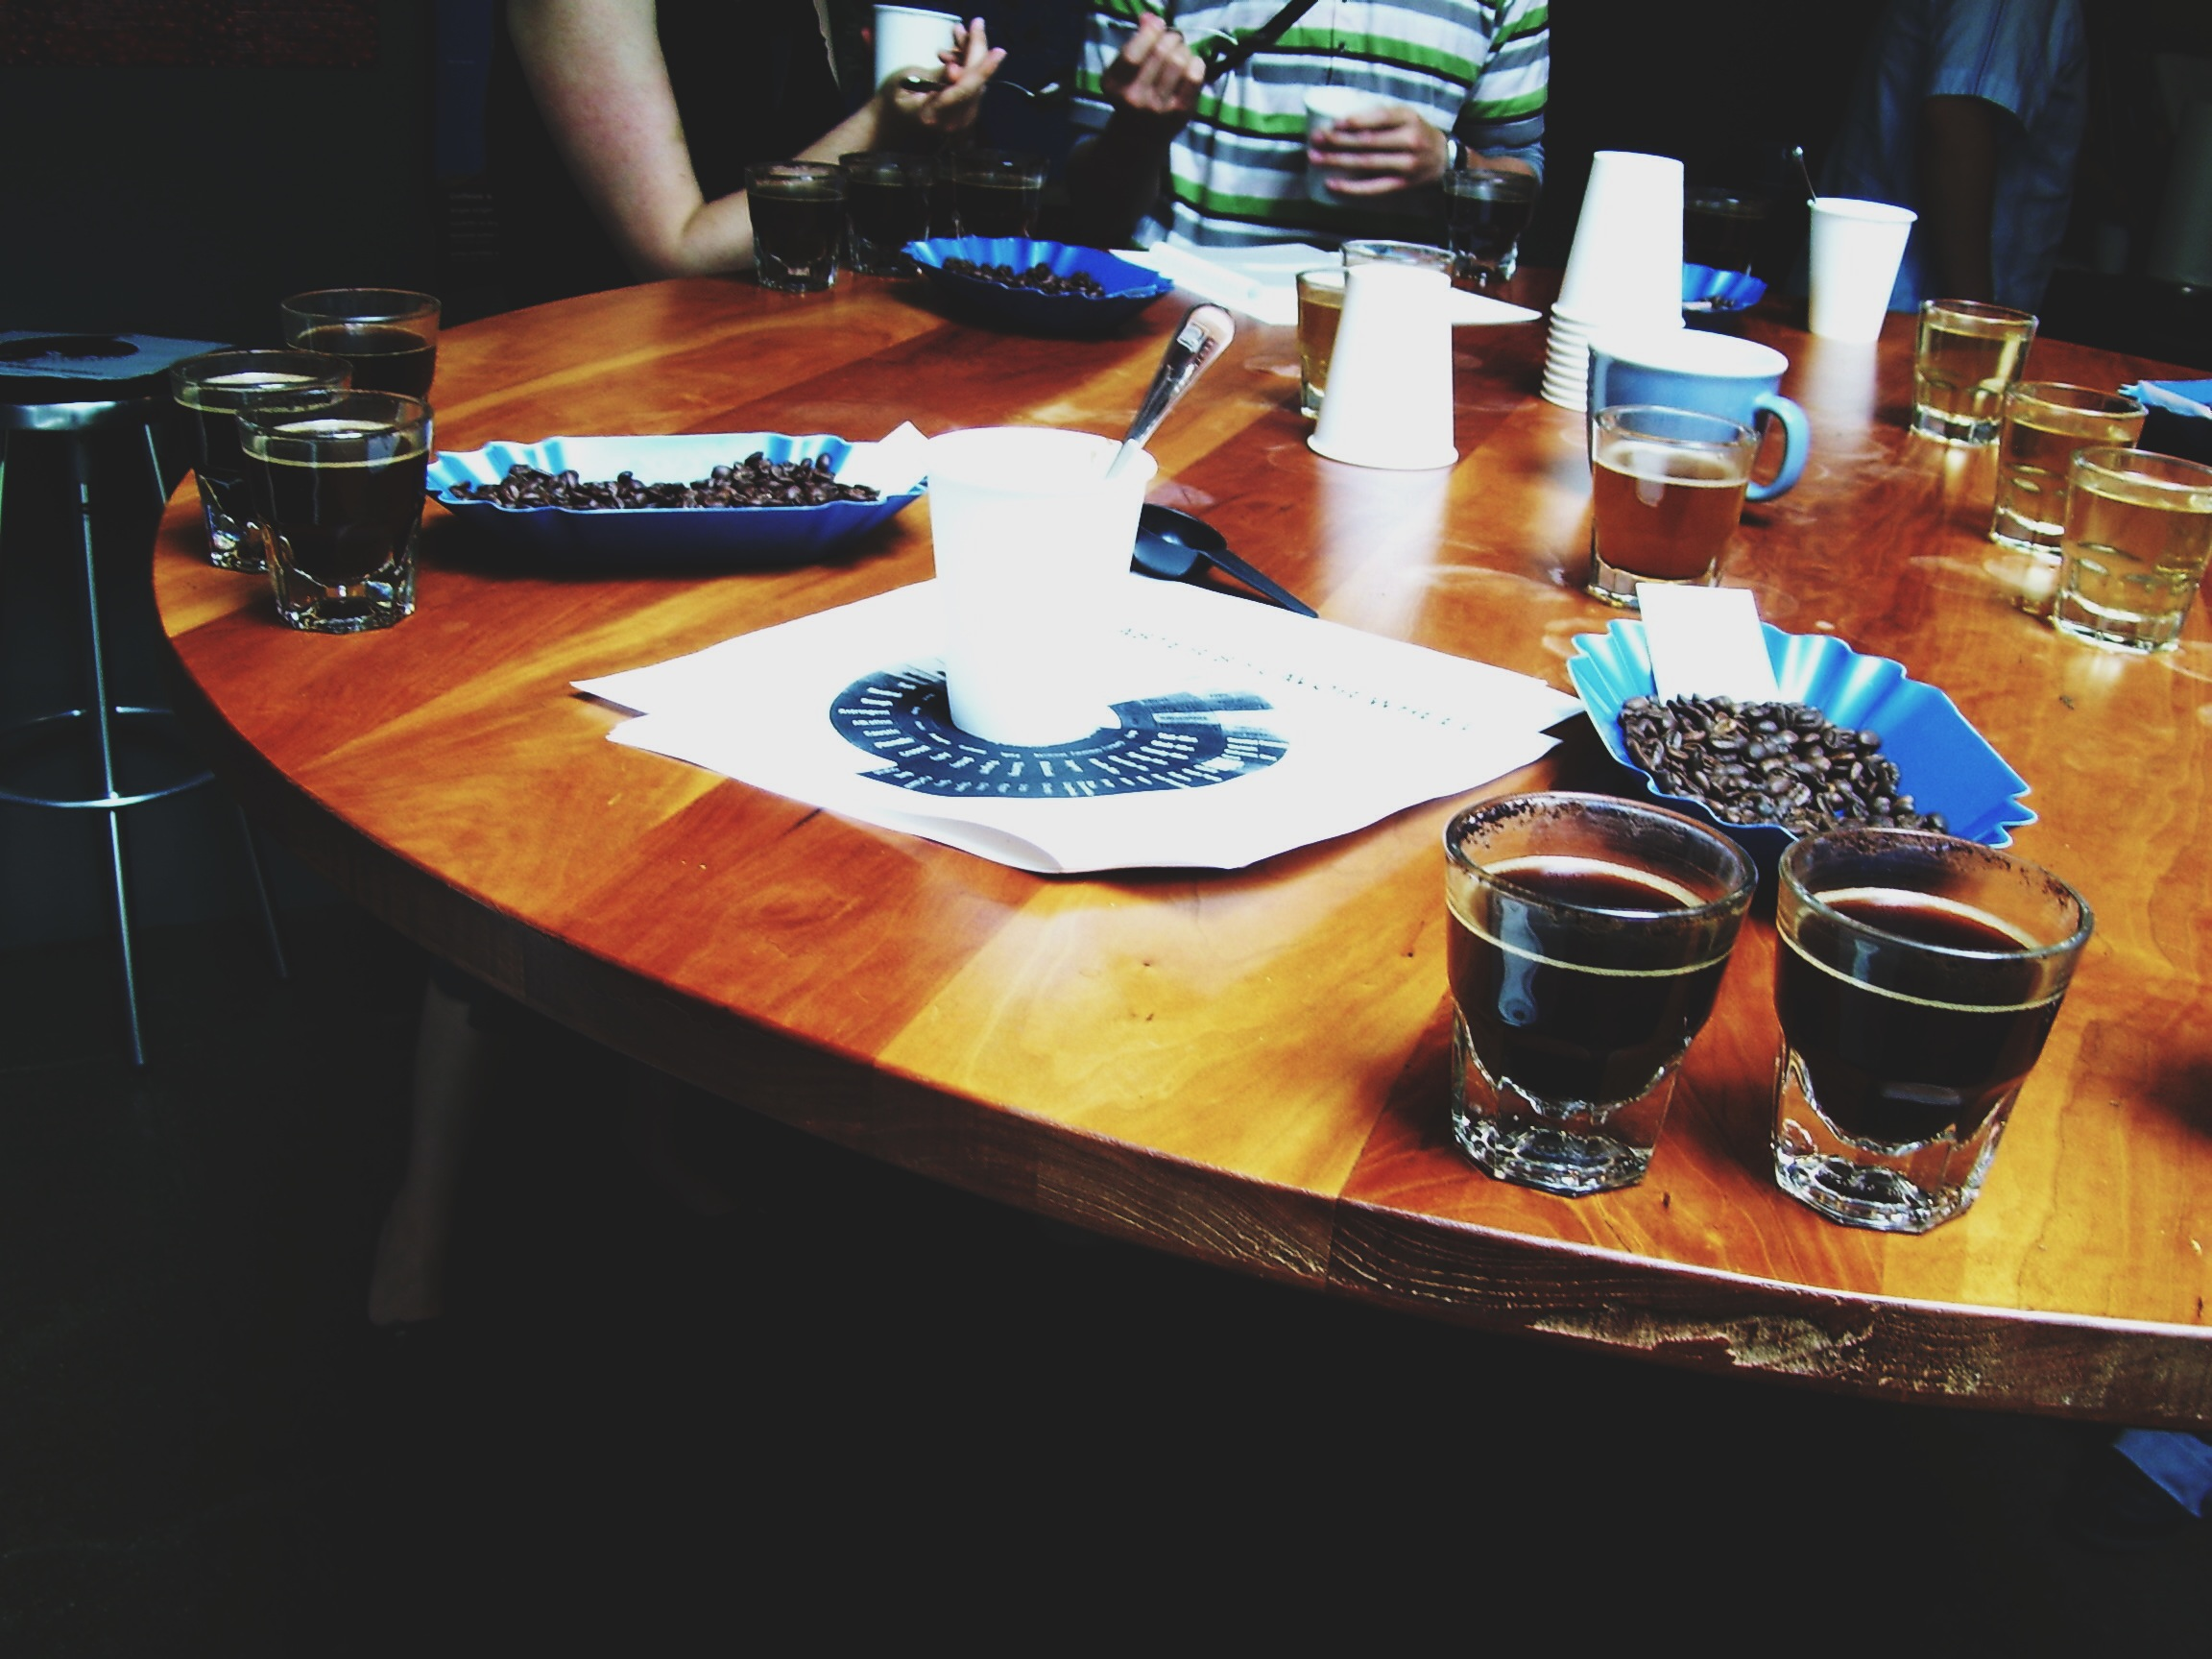 We also had about three rounds of tasting or, as is called in the coffee world, cuppings.